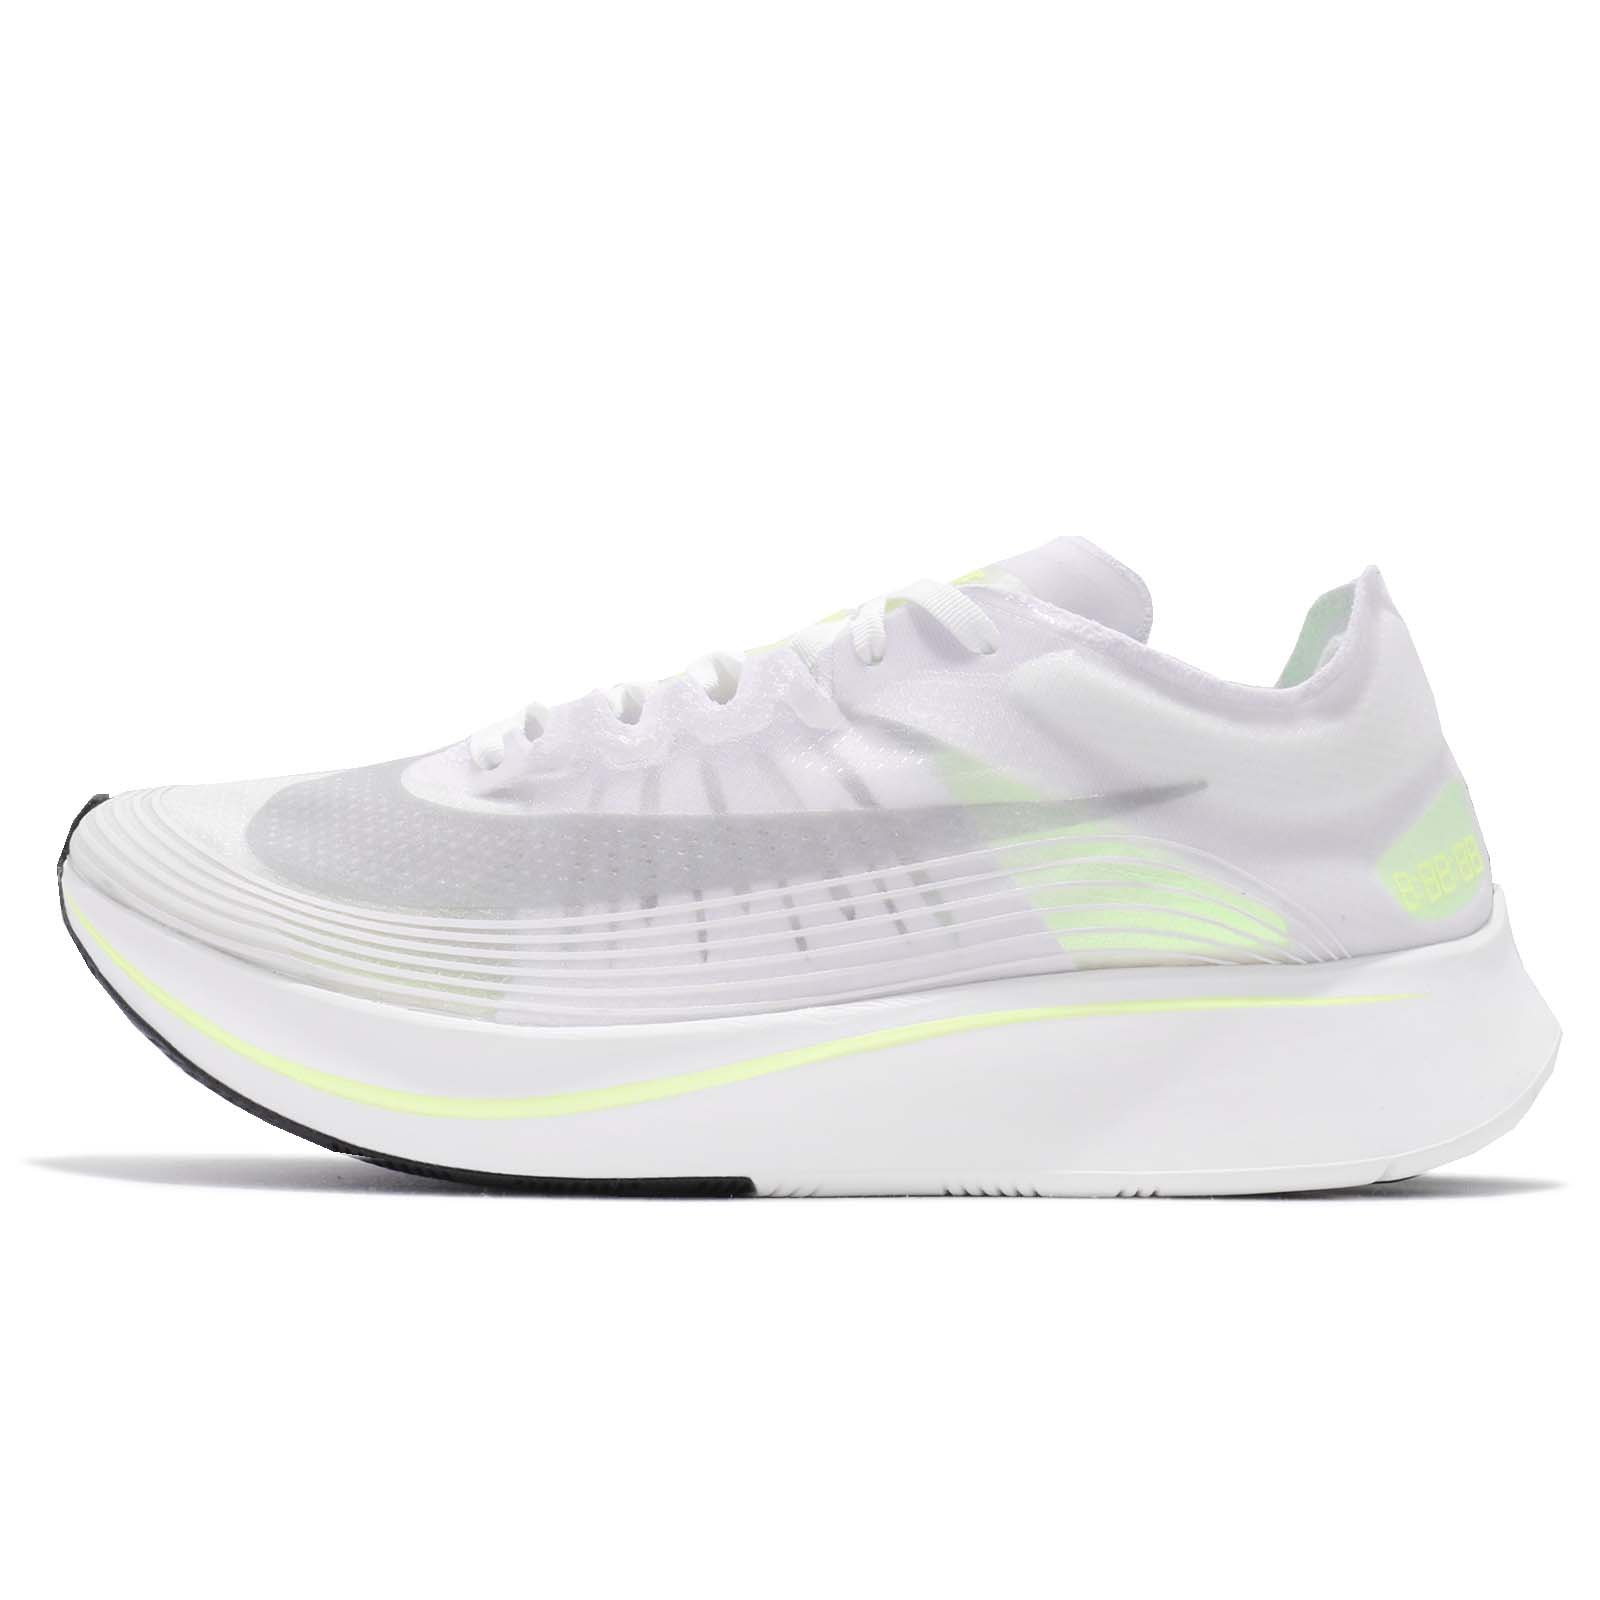 on sale 2cd90 0653a Galleon - Nike Men s Zoom Fly SP Running Shoes-White Volt Glow-10.5